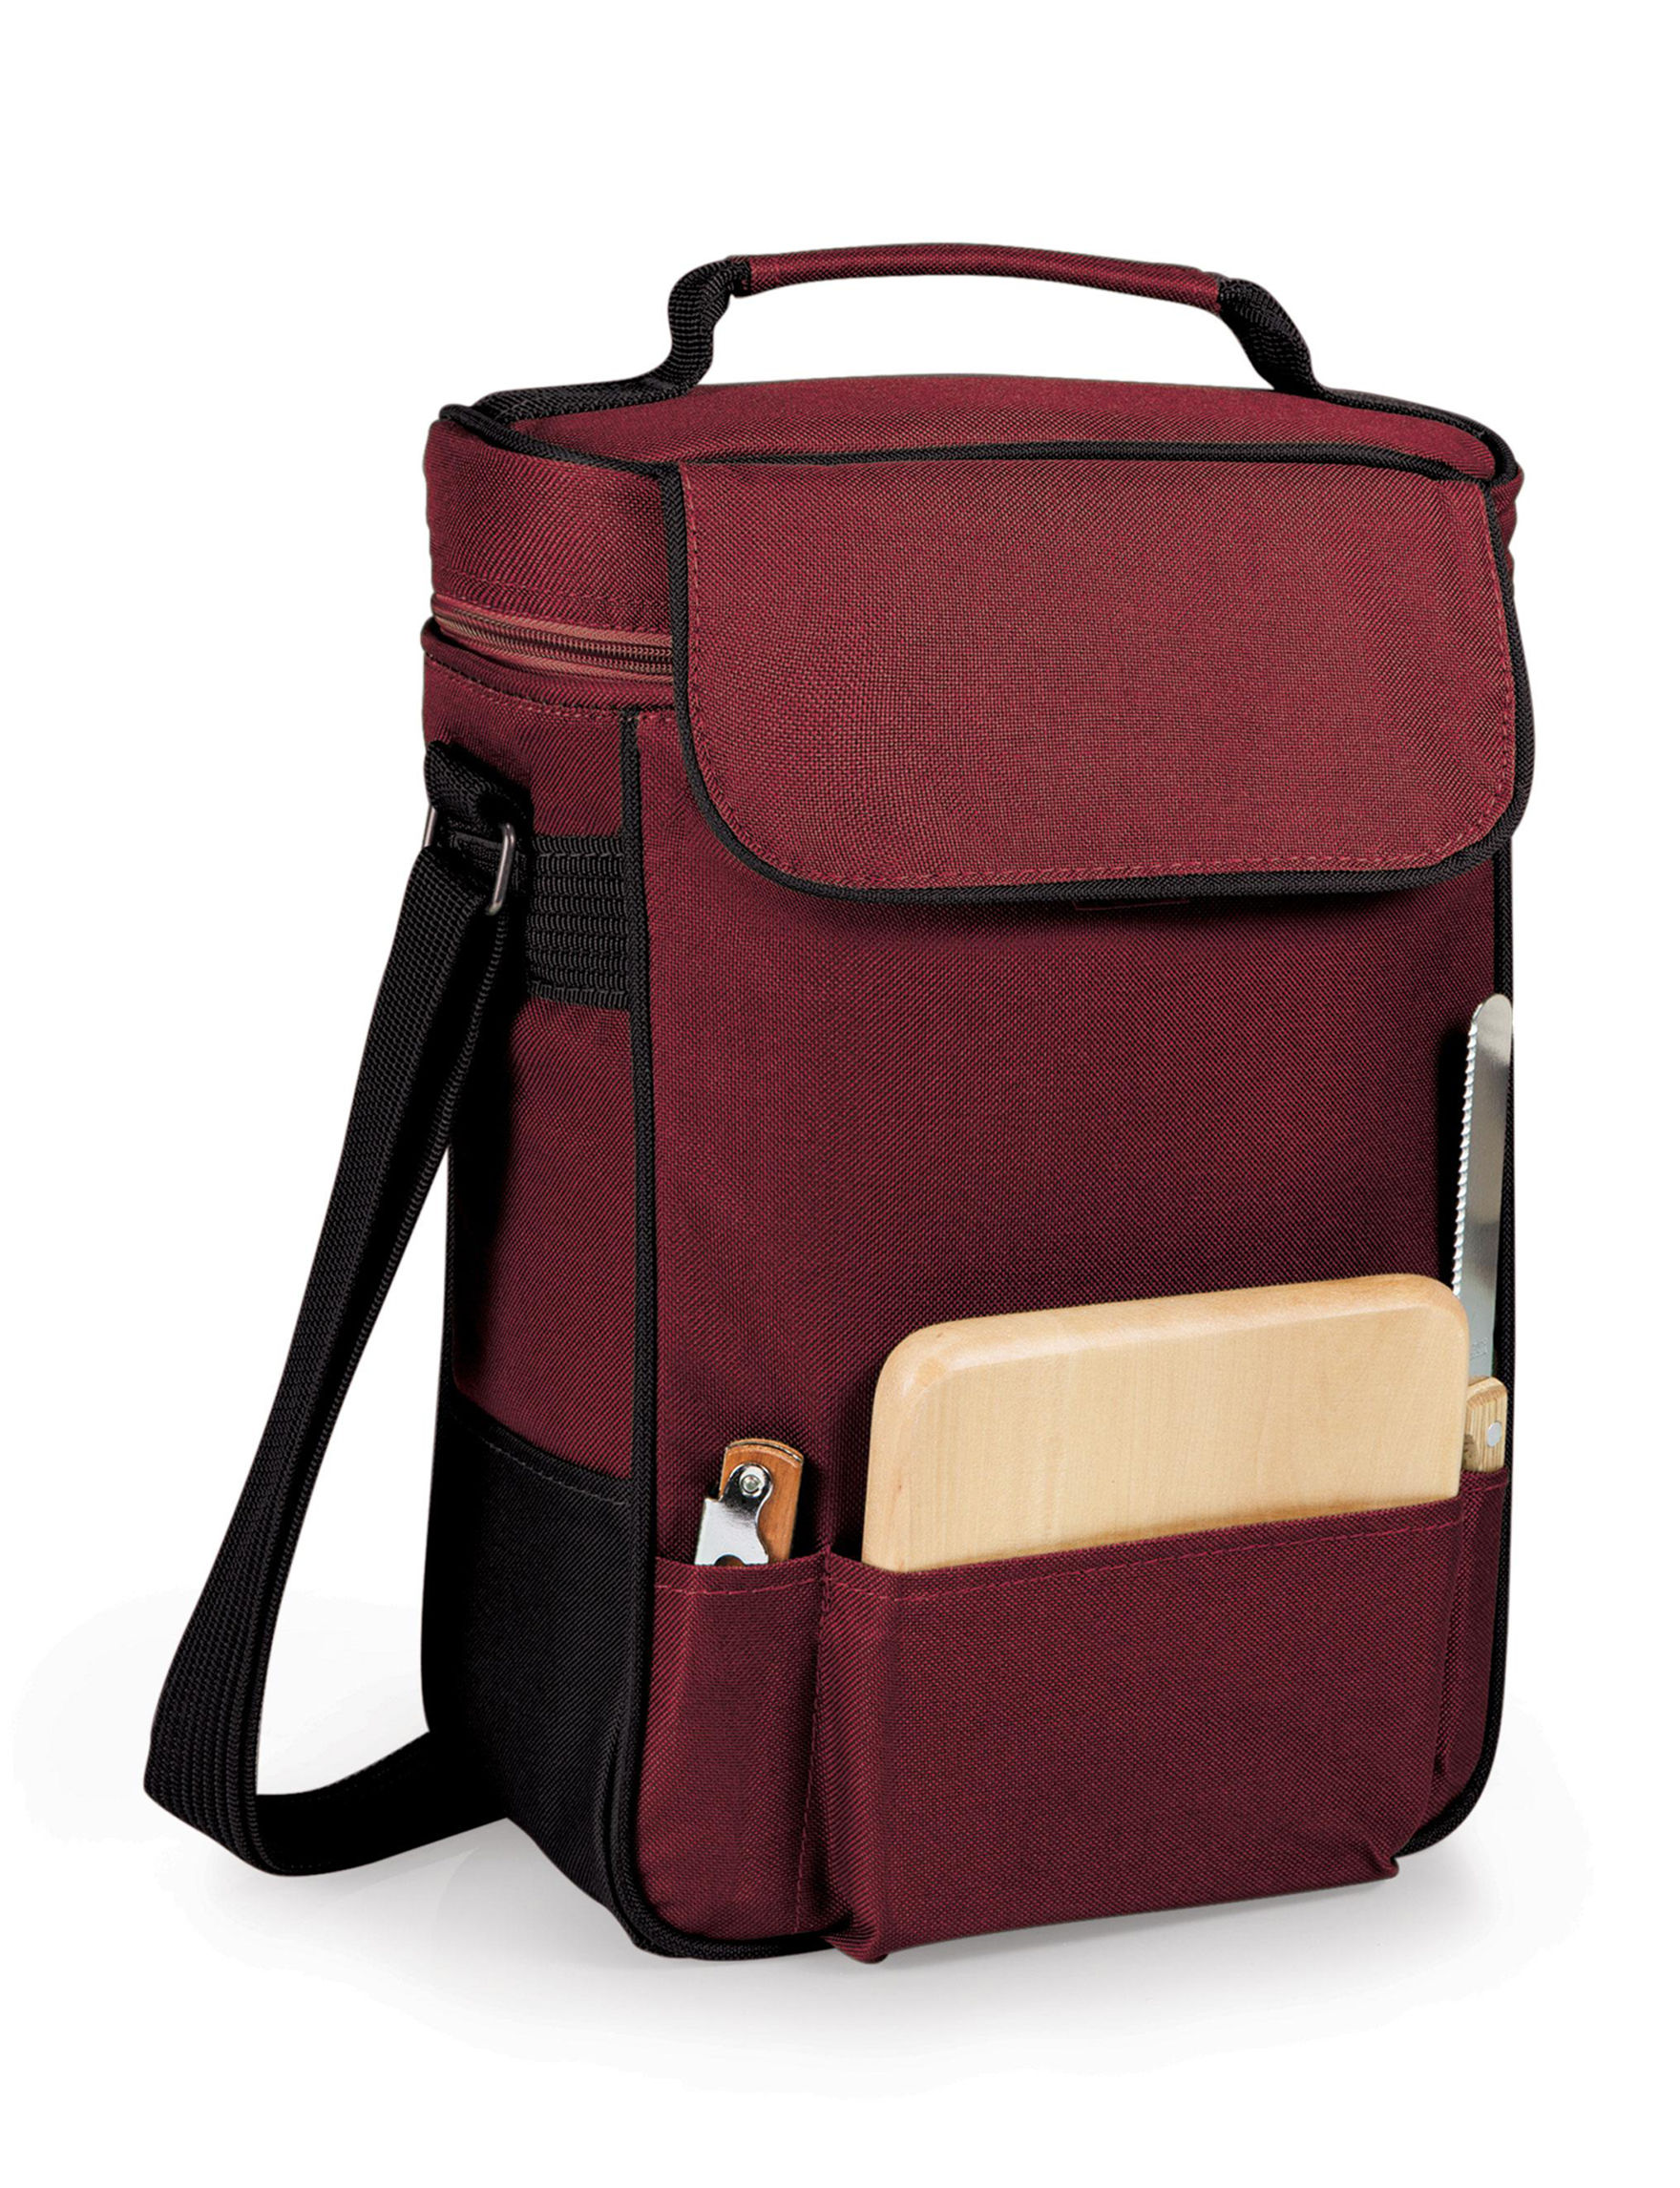 Picnic Time Burgundy Carriers & Totes Coolers Cutting Boards Drinkware Sets Wine & Bar Tools Bar Accessories Camping & Outdoor Gear Drinkware